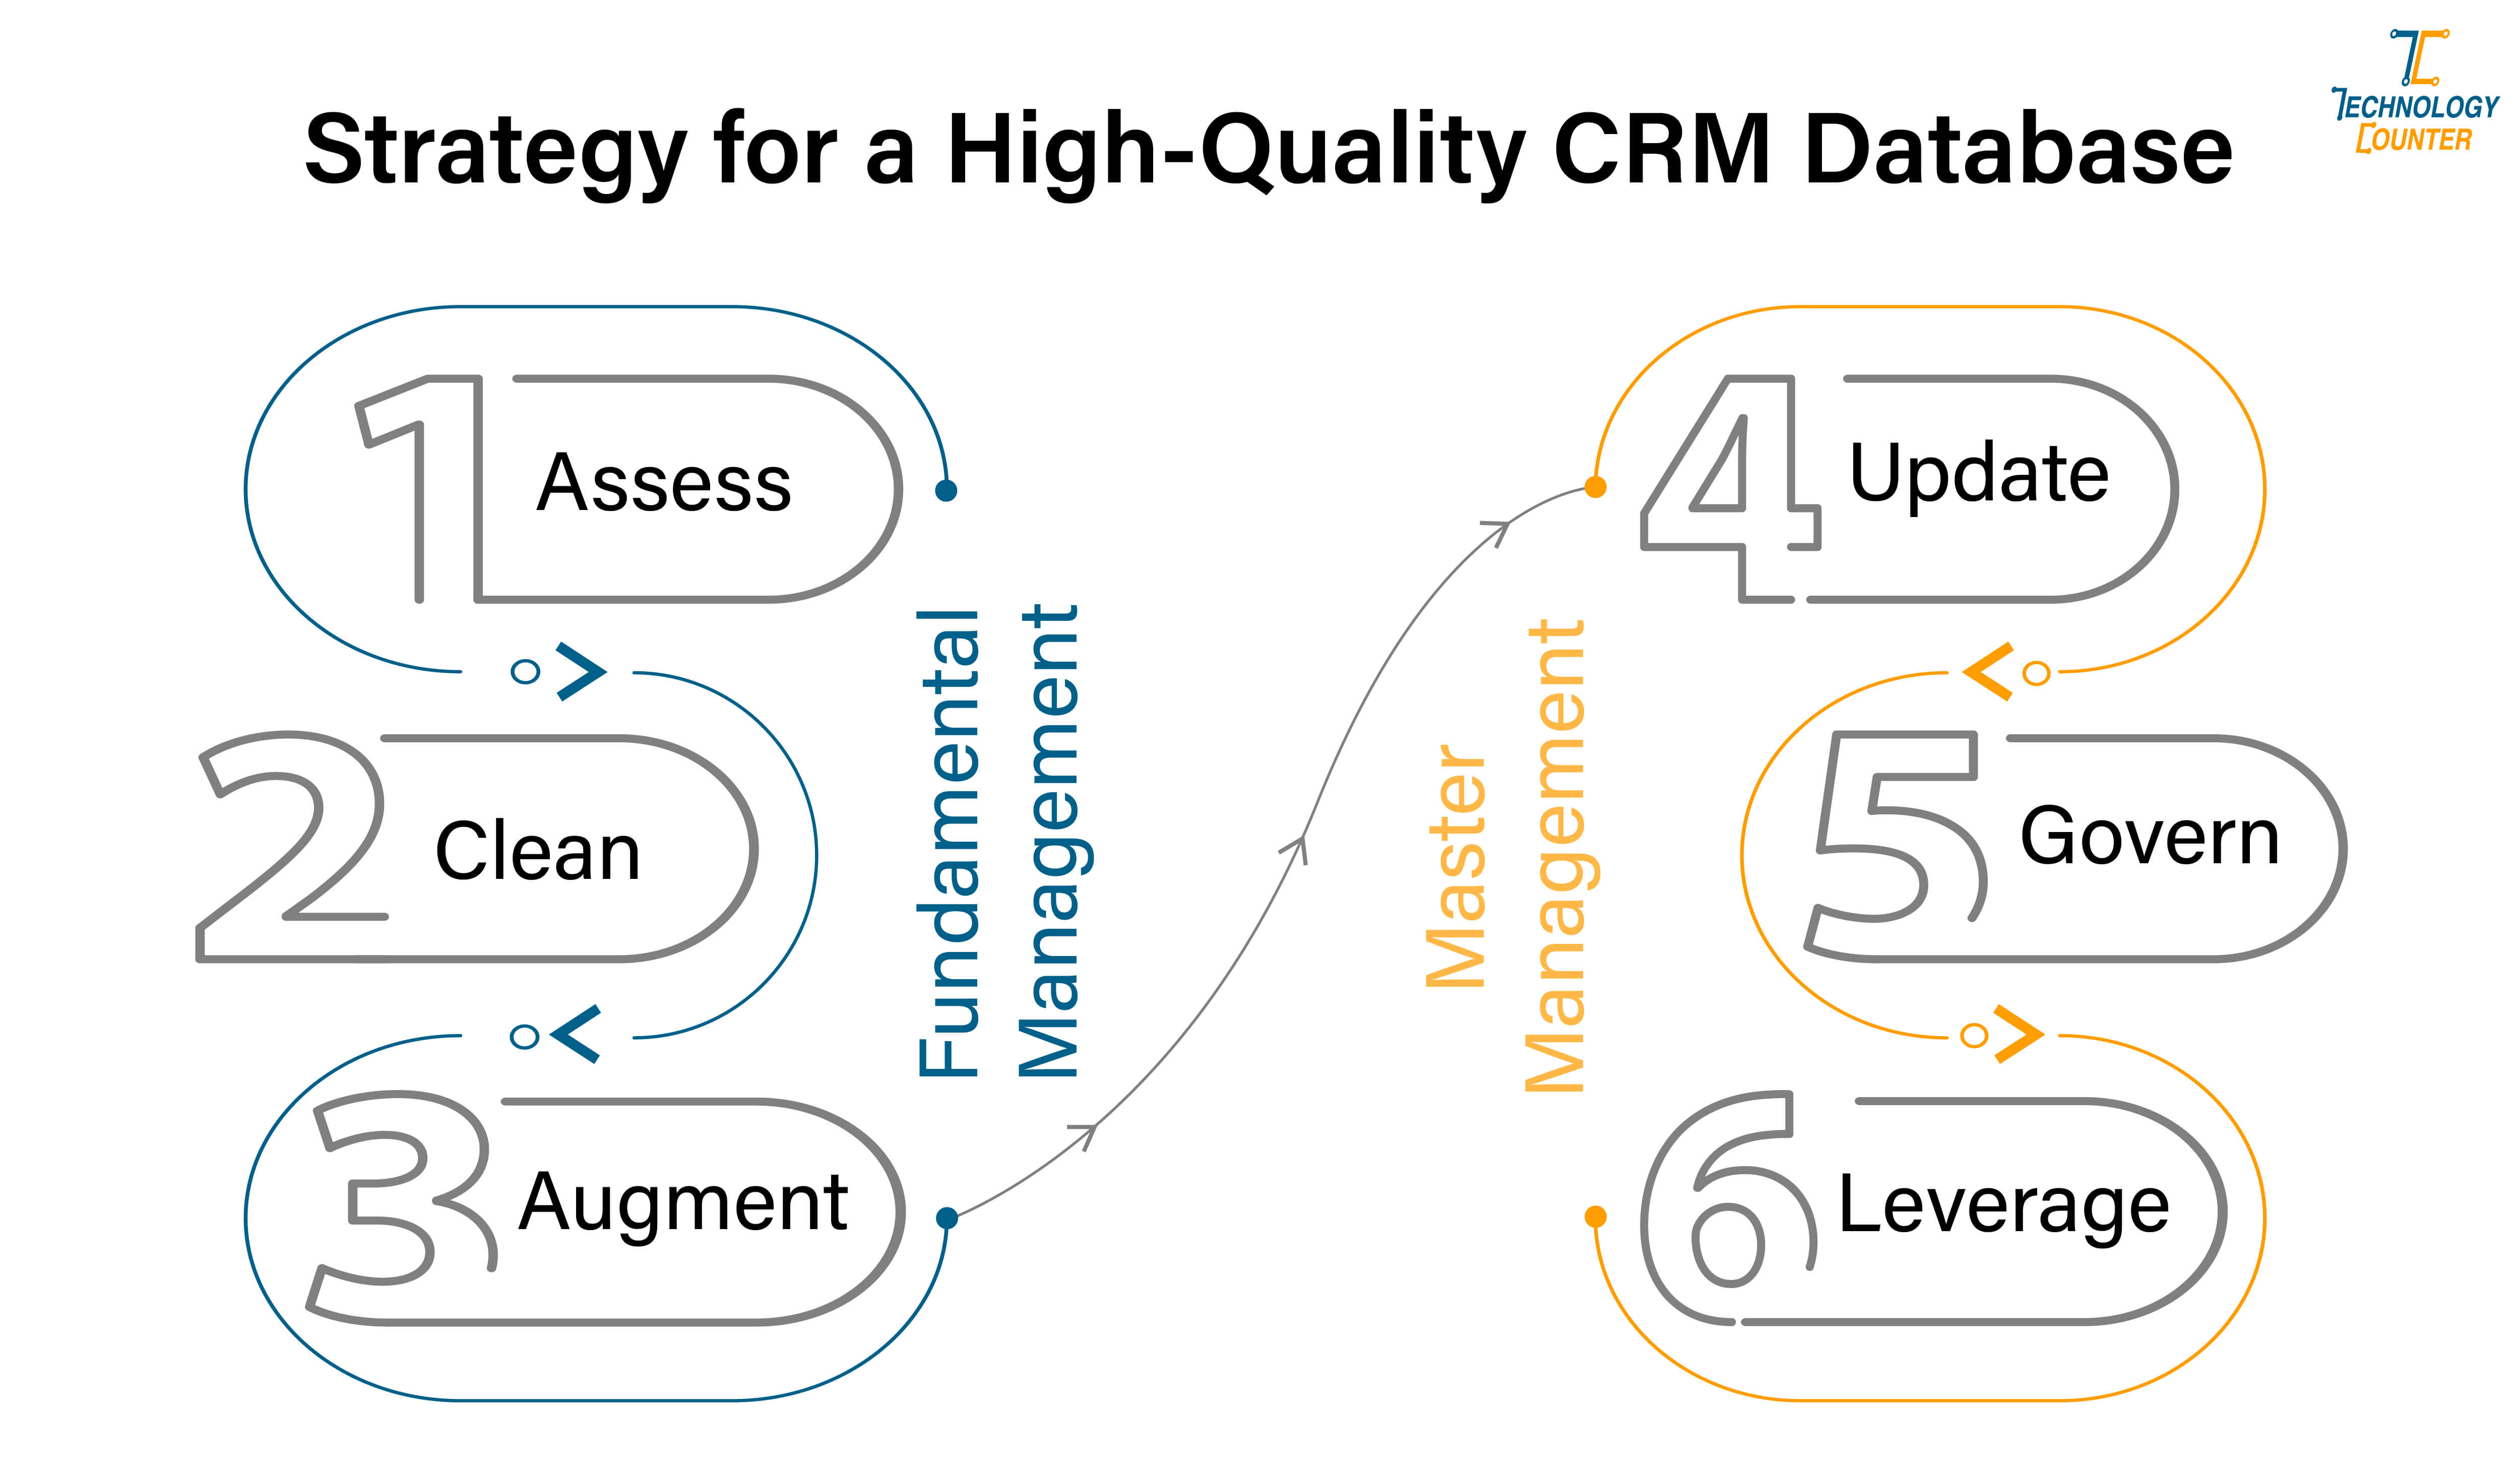 Strategy for a high quality crm database